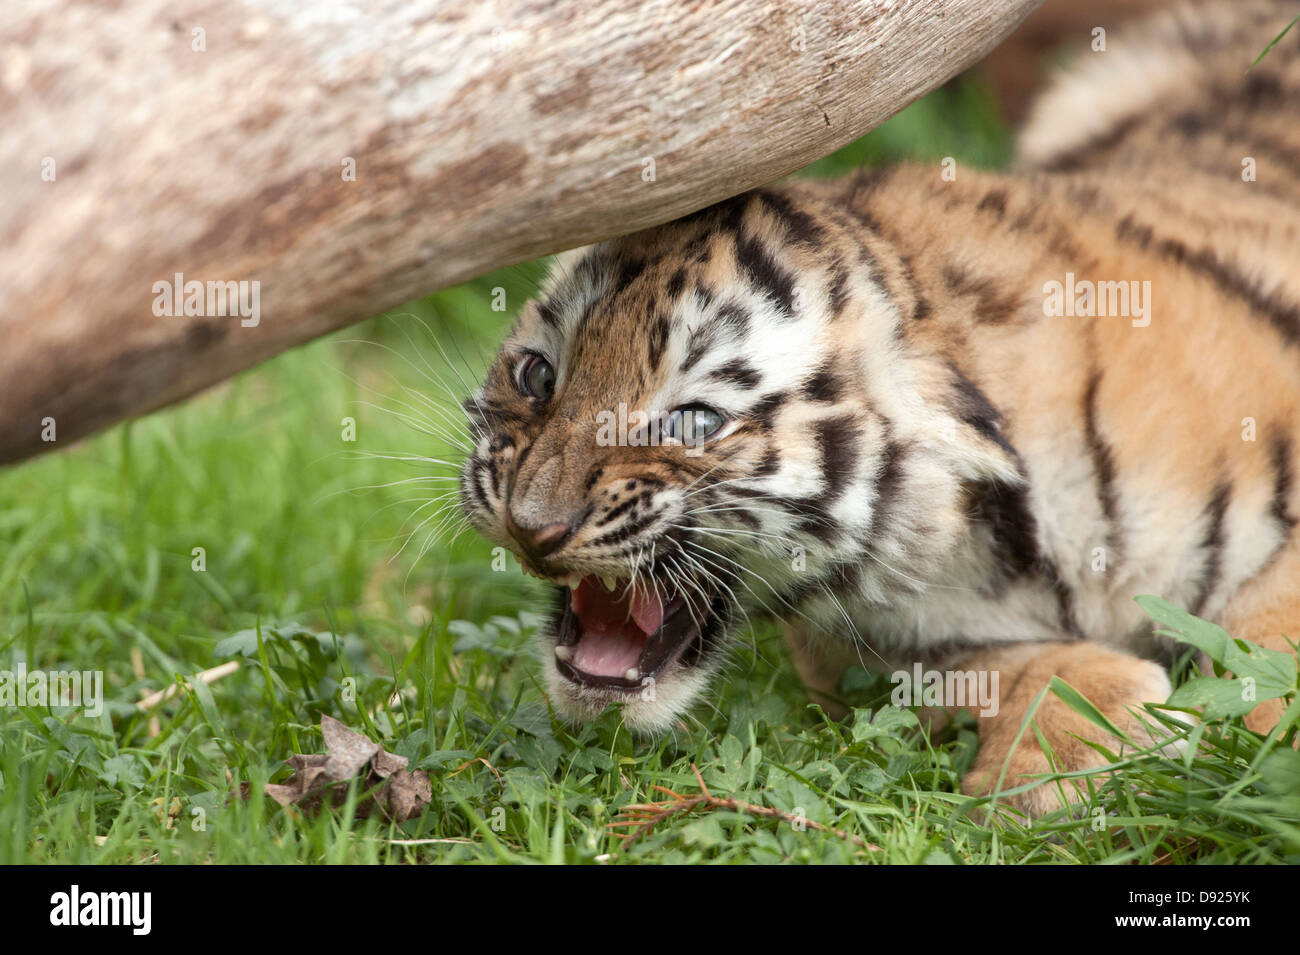 Eight-week-old female Amur tiger cub snarling - Stock Image